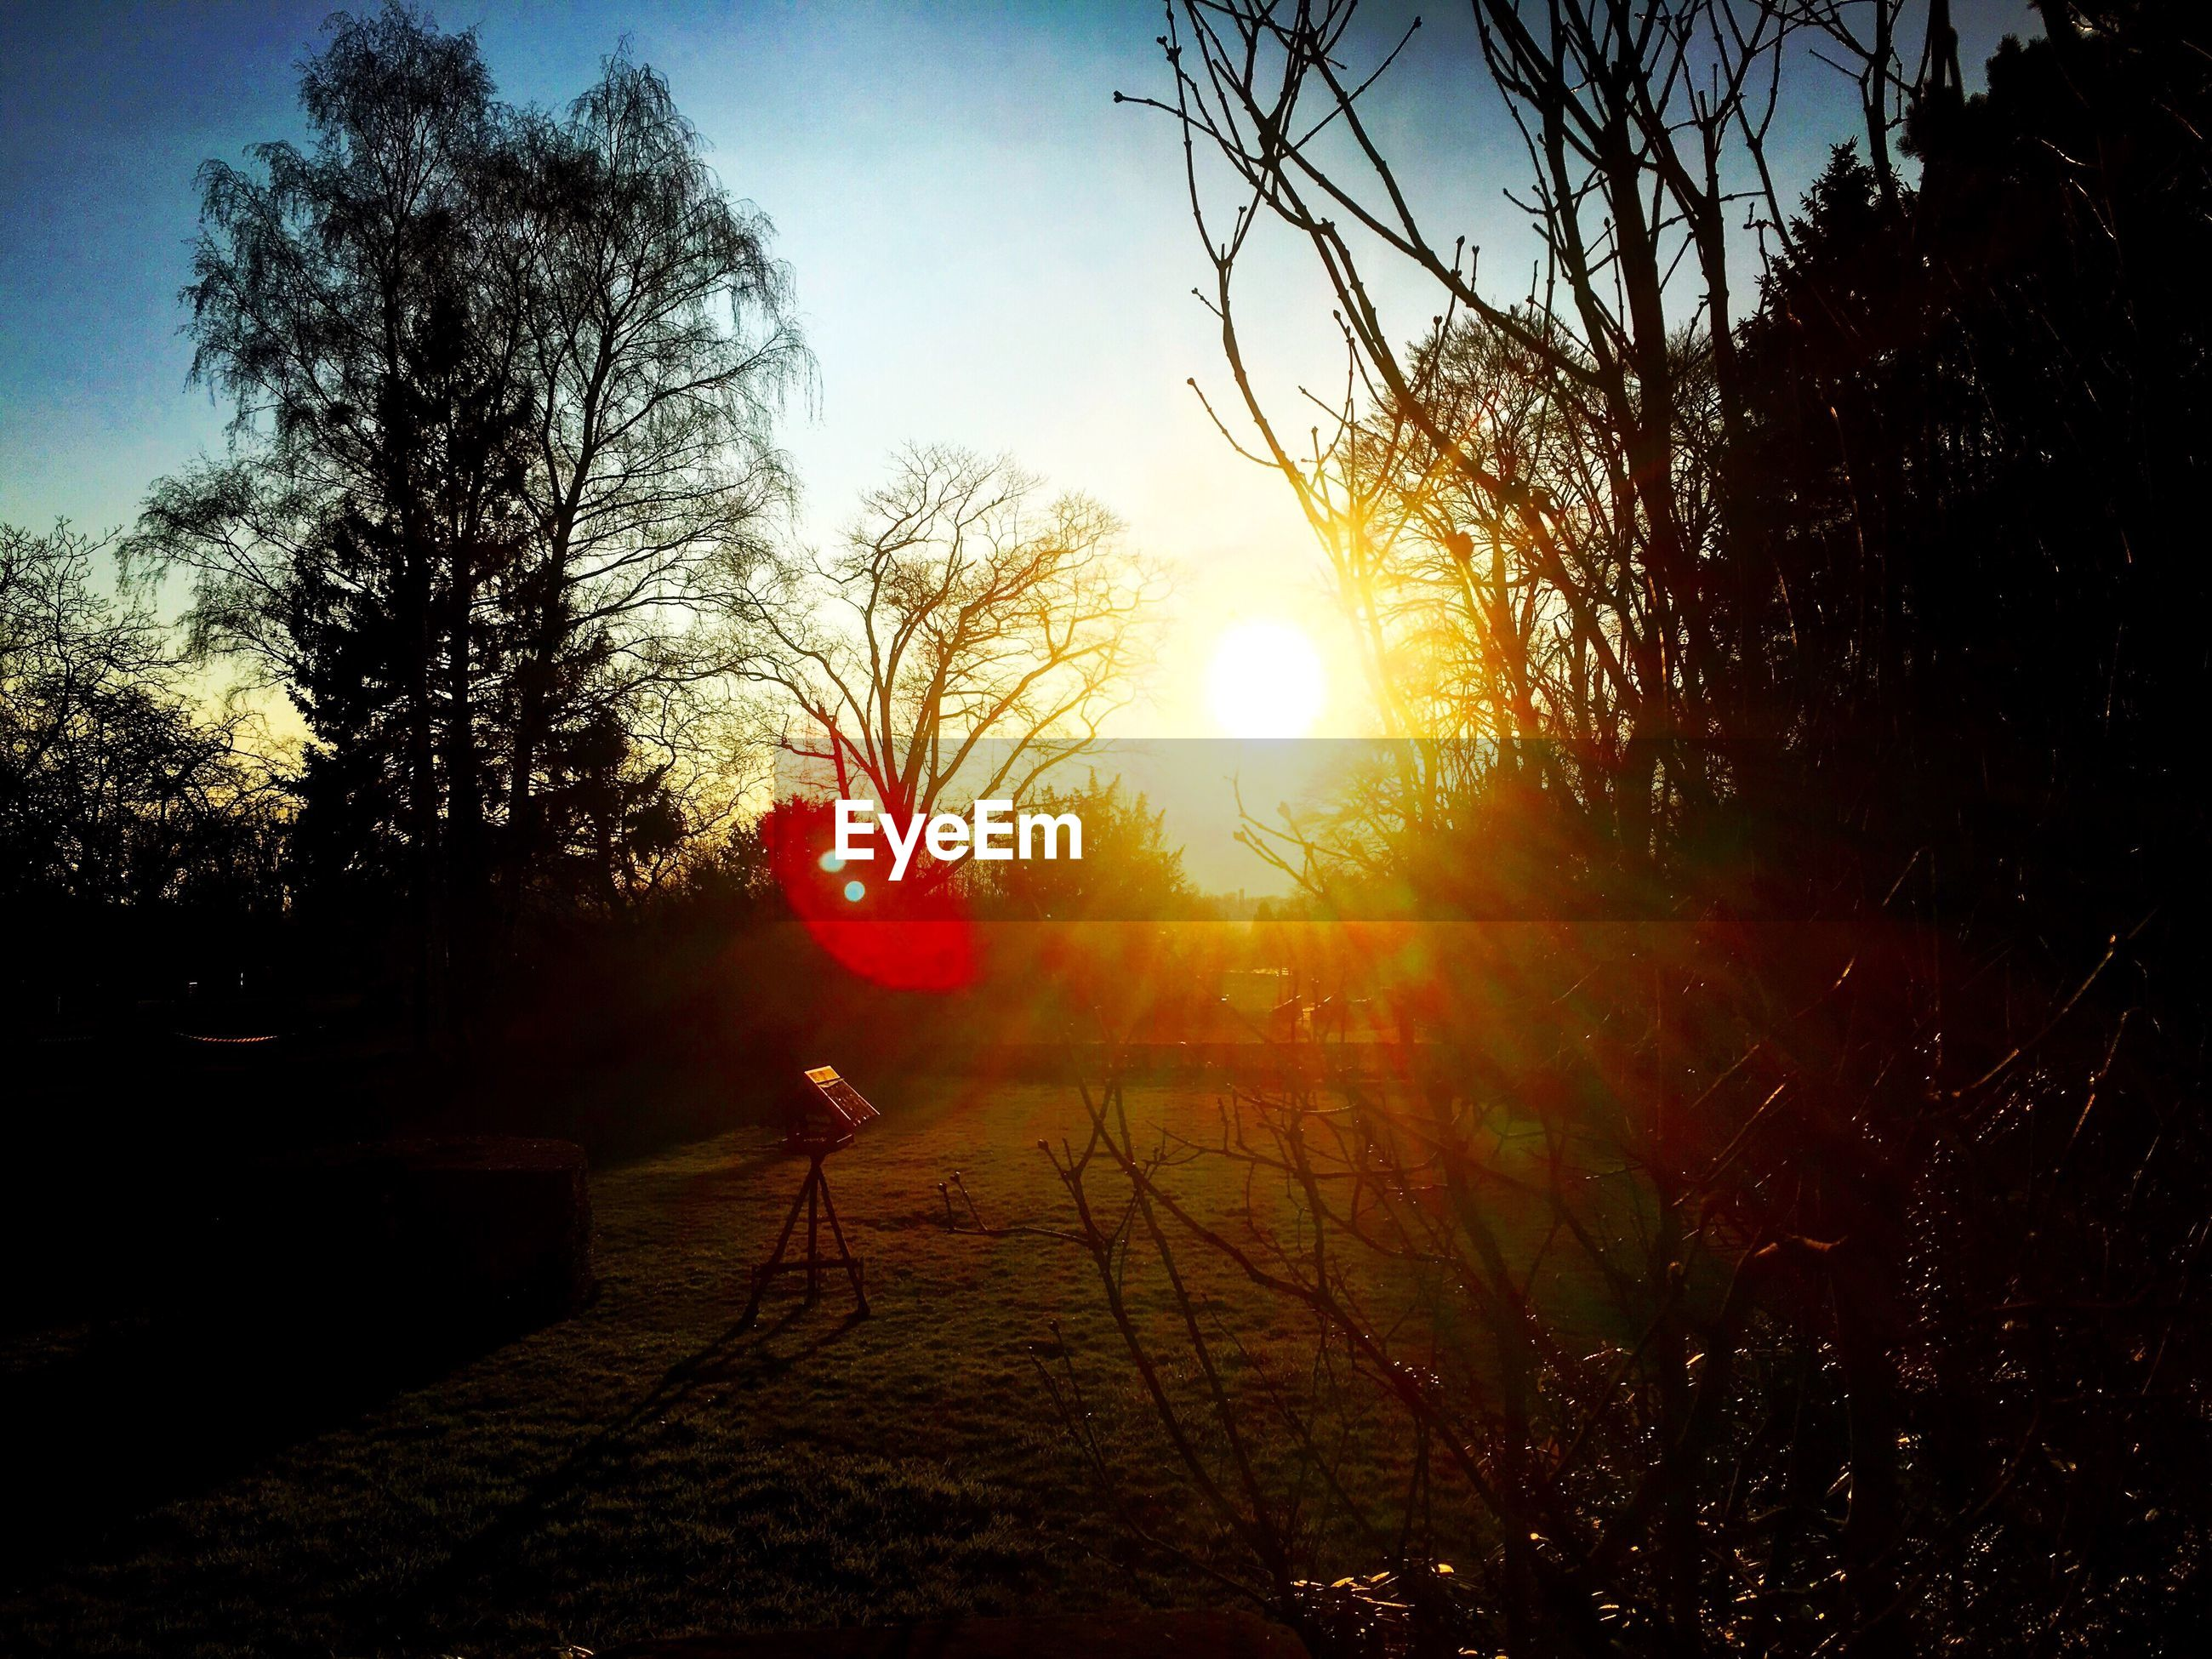 sun, tree, sunset, sunlight, lens flare, silhouette, sky, sunbeam, tranquility, nature, branch, beauty in nature, clear sky, tranquil scene, scenics, growth, outdoors, field, no people, bare tree